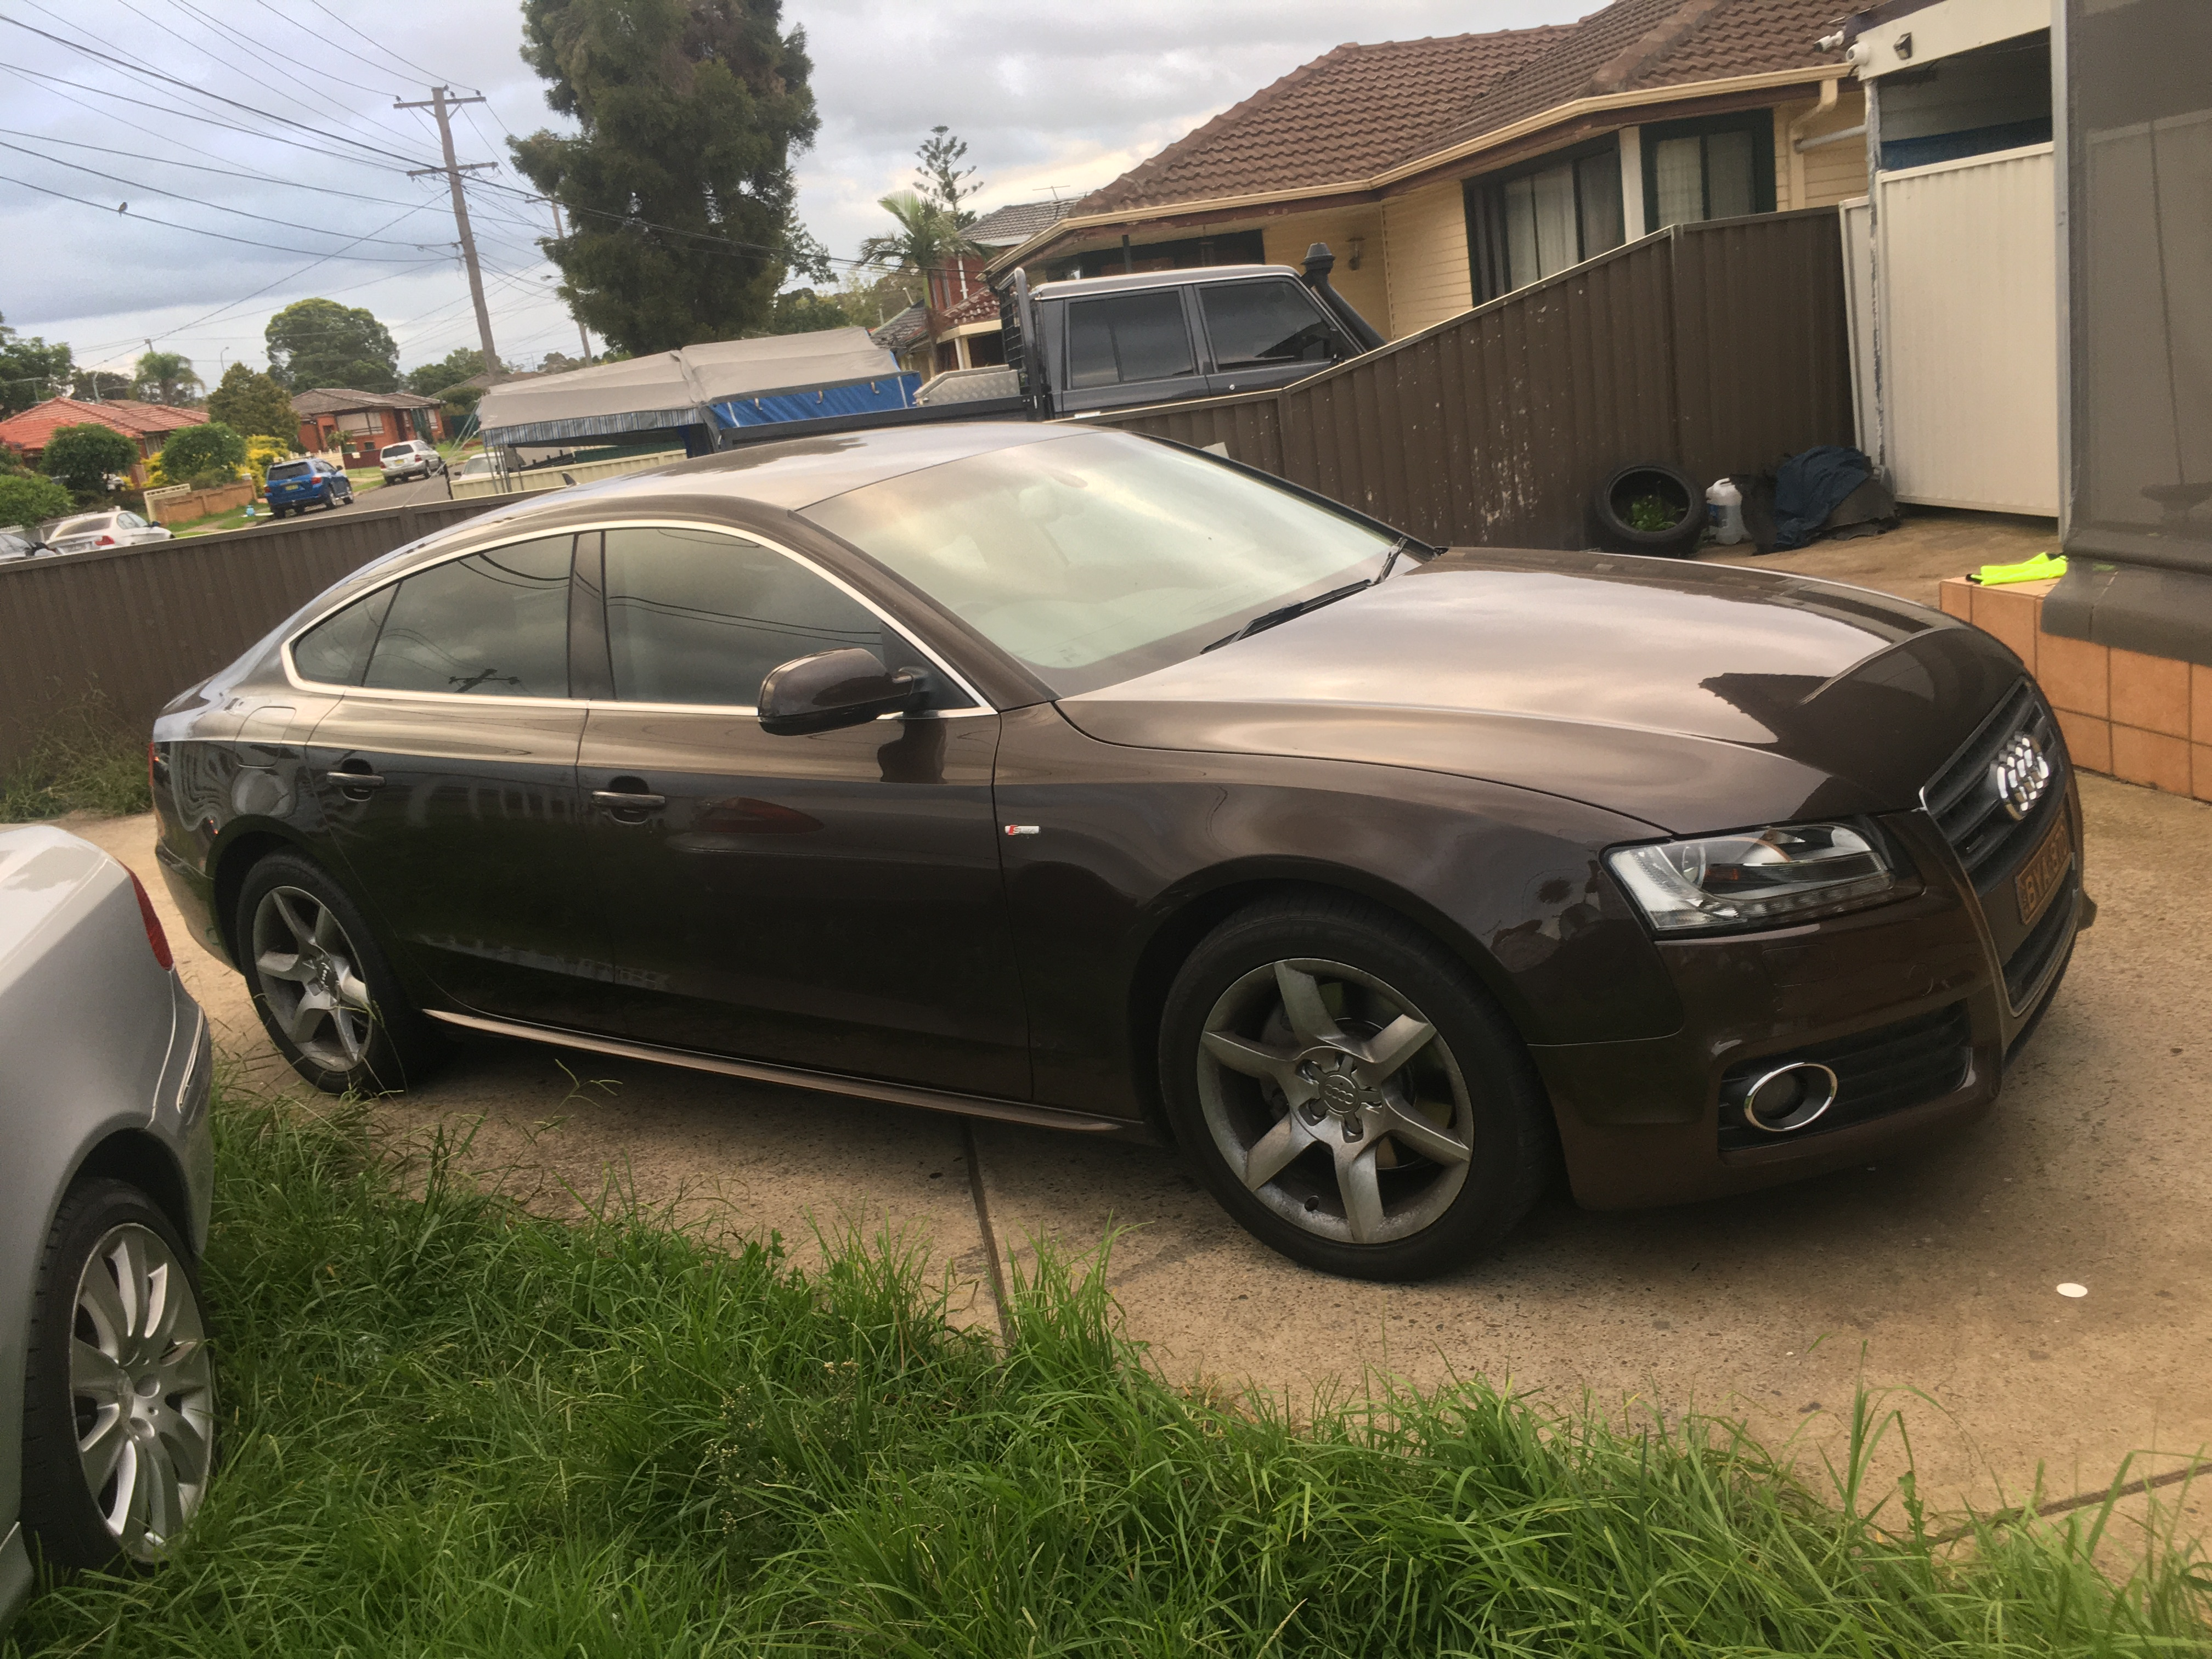 audi a5 2010 turbo Kms 79000